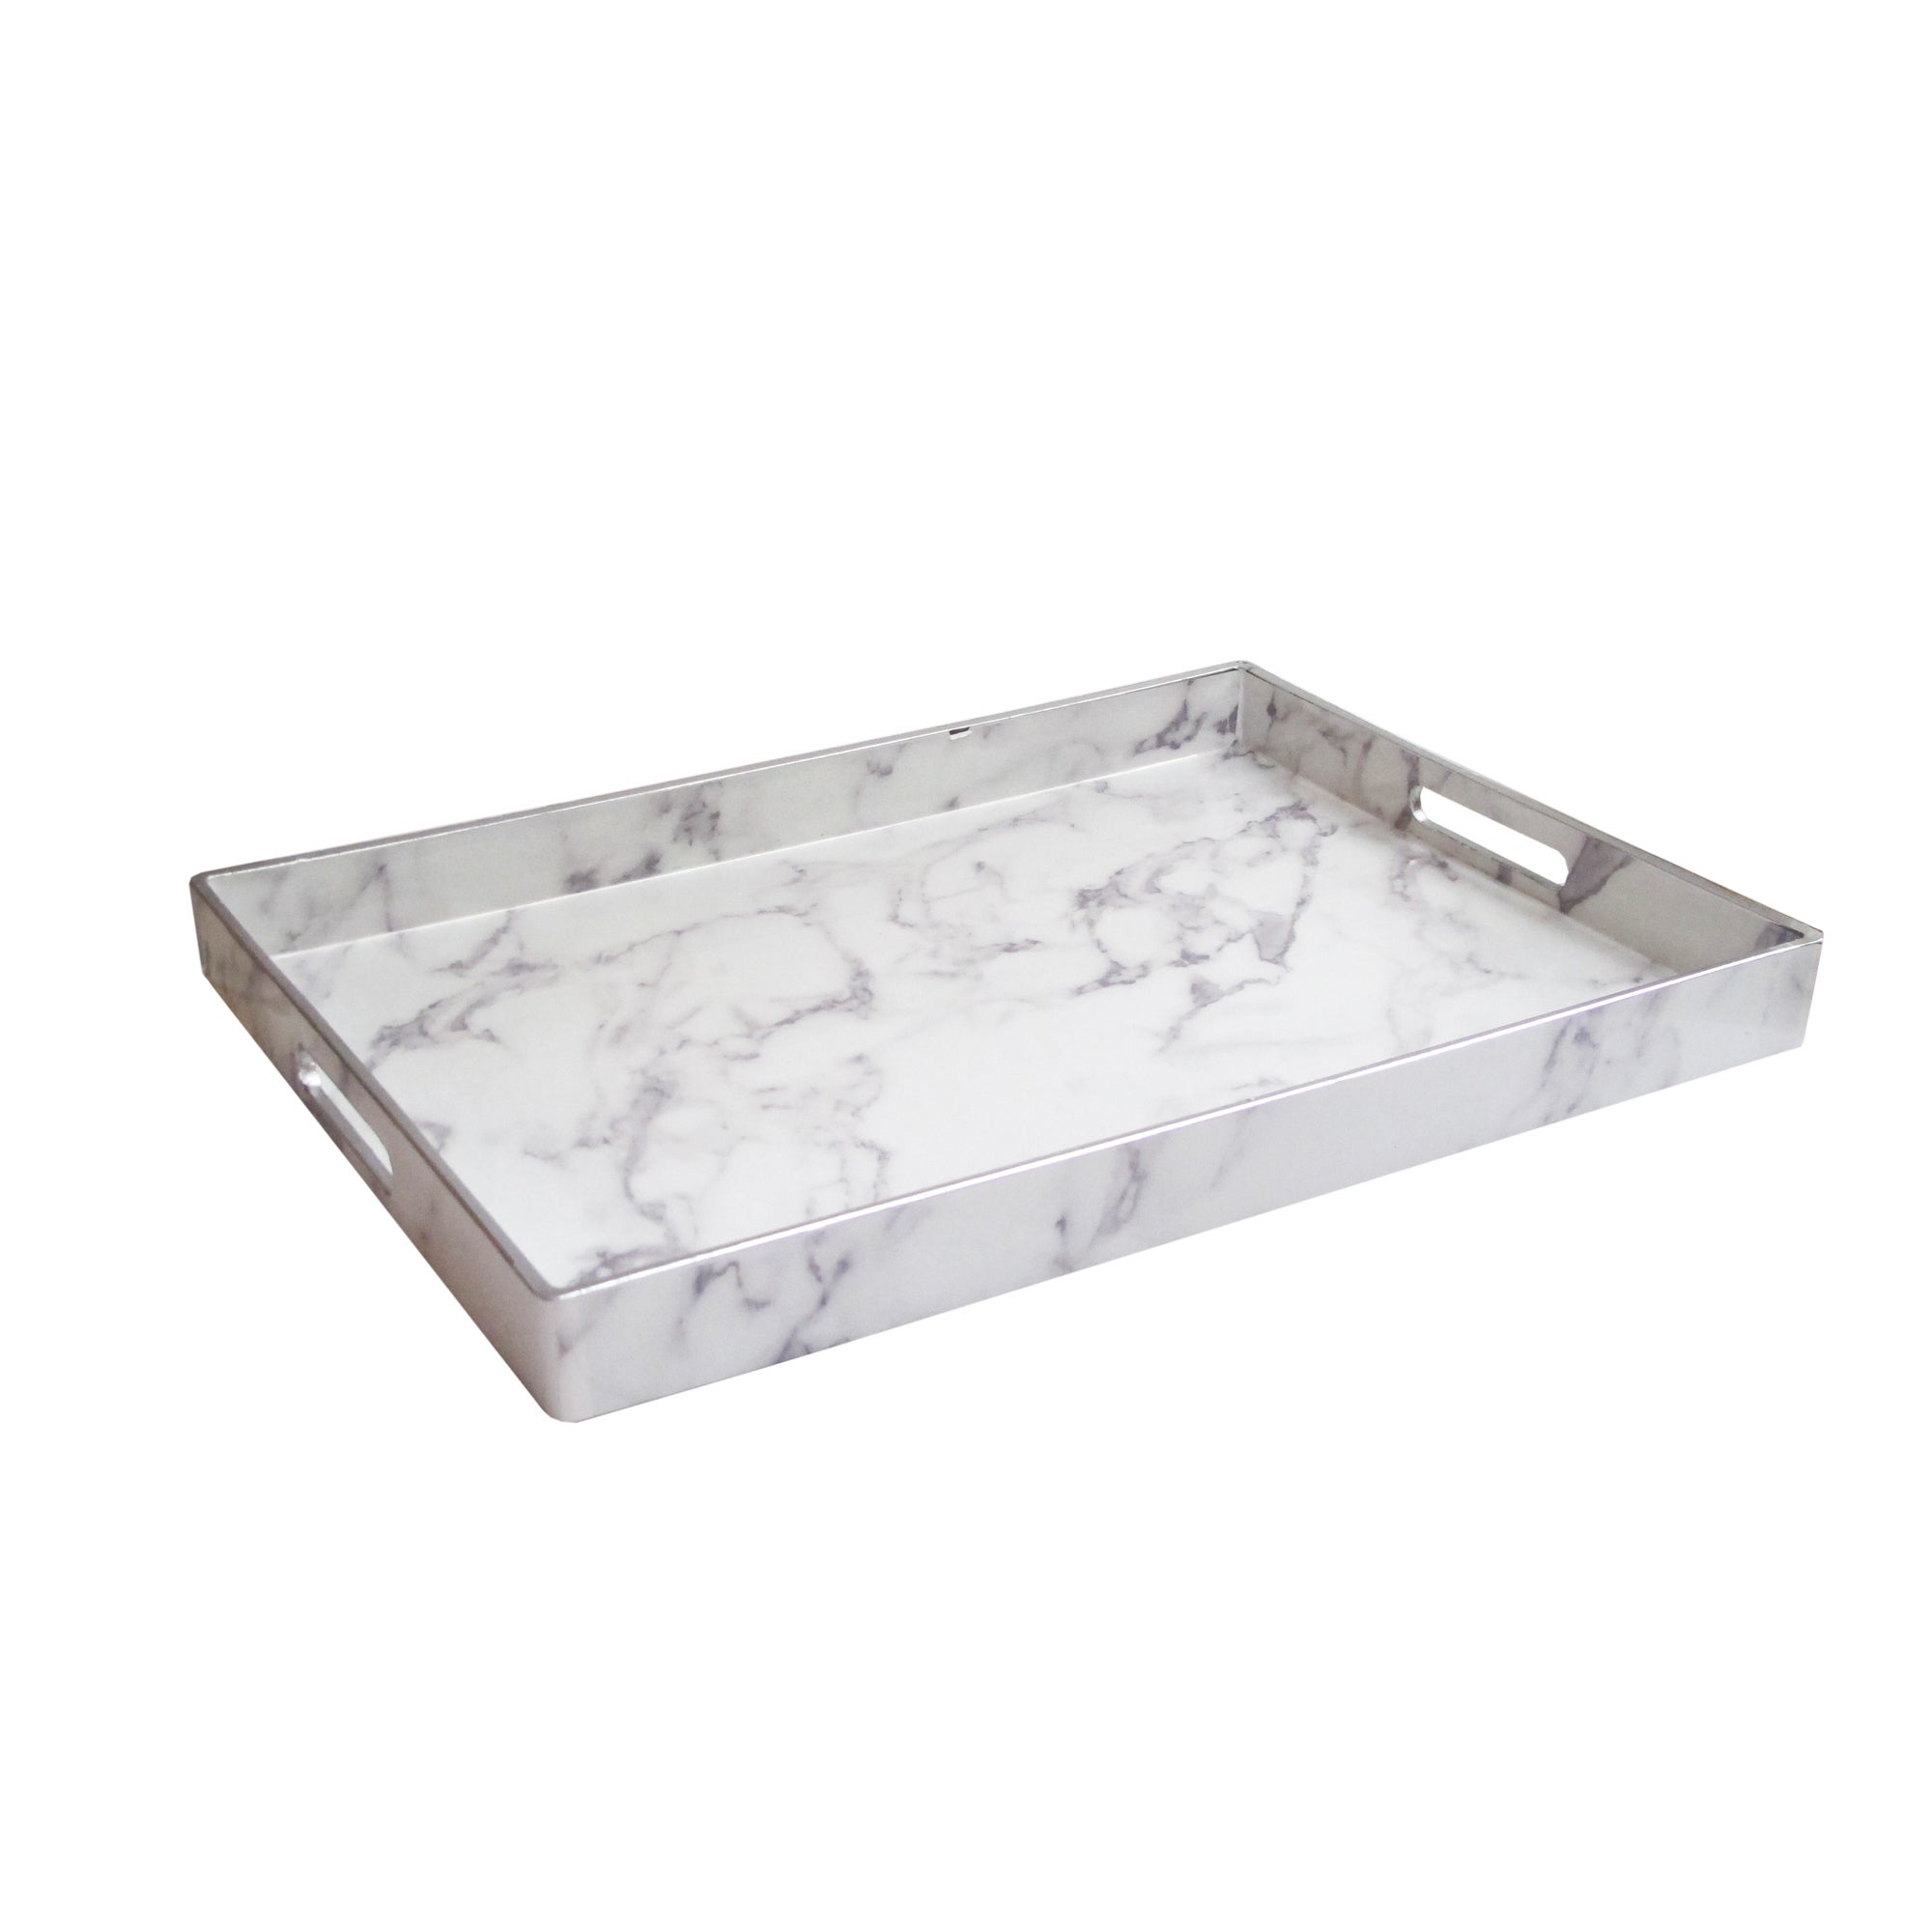 Marble White Grey Silver Serving Tray 14x19 Free Shipping On Orders Over 45 19850349